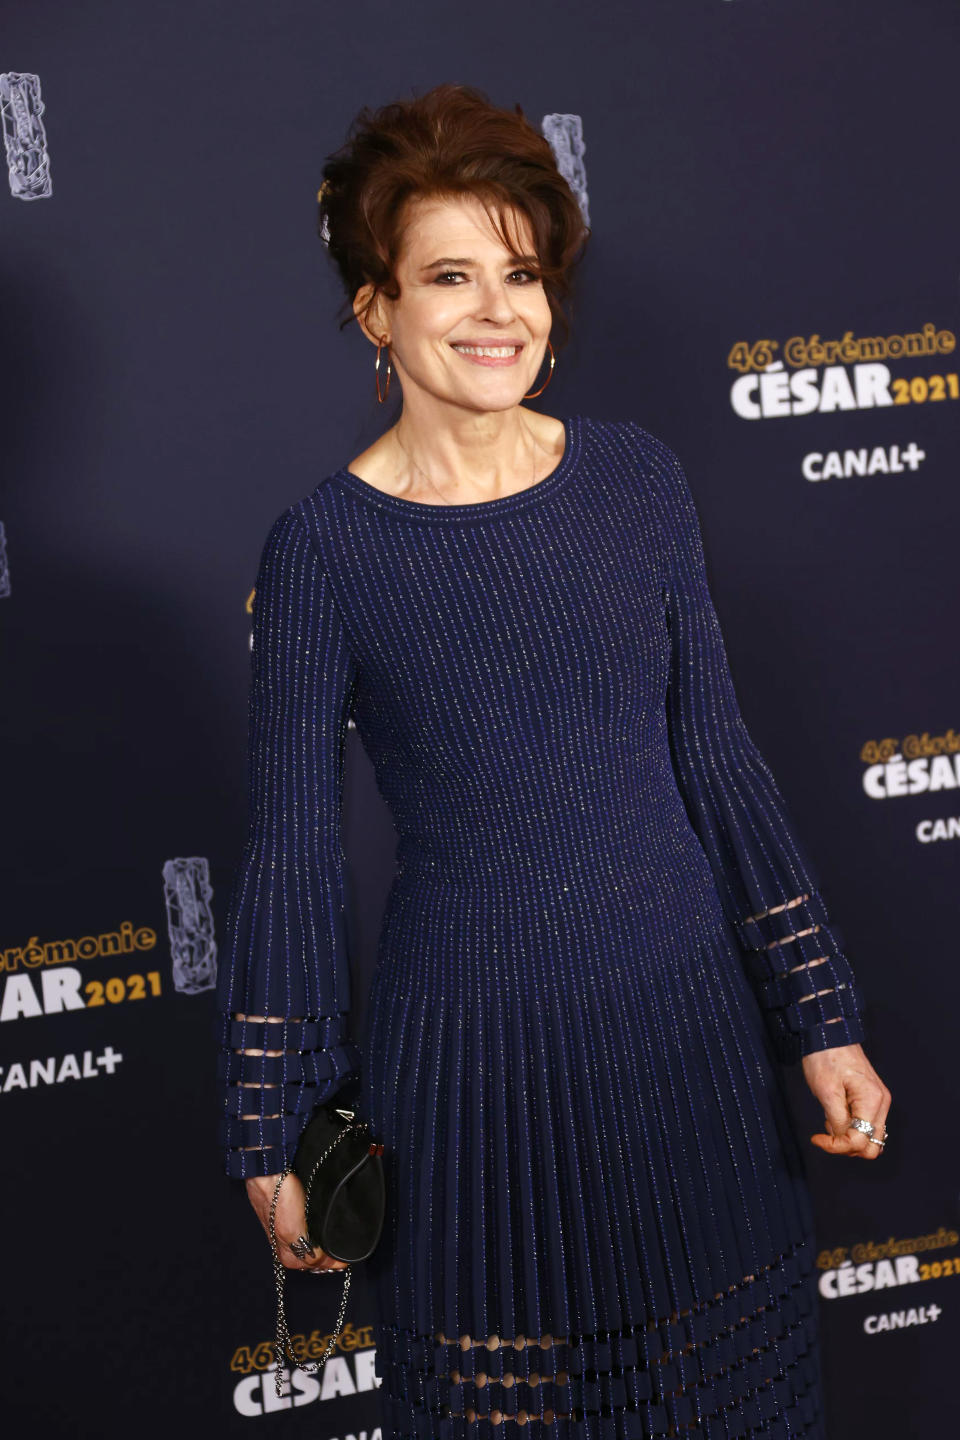 <p>Fanny Ardant arrives a choisi une longue robe bleu marine à la jupe transparente. (Photo by Thomas Samson/Pool/Getty Images)</p>